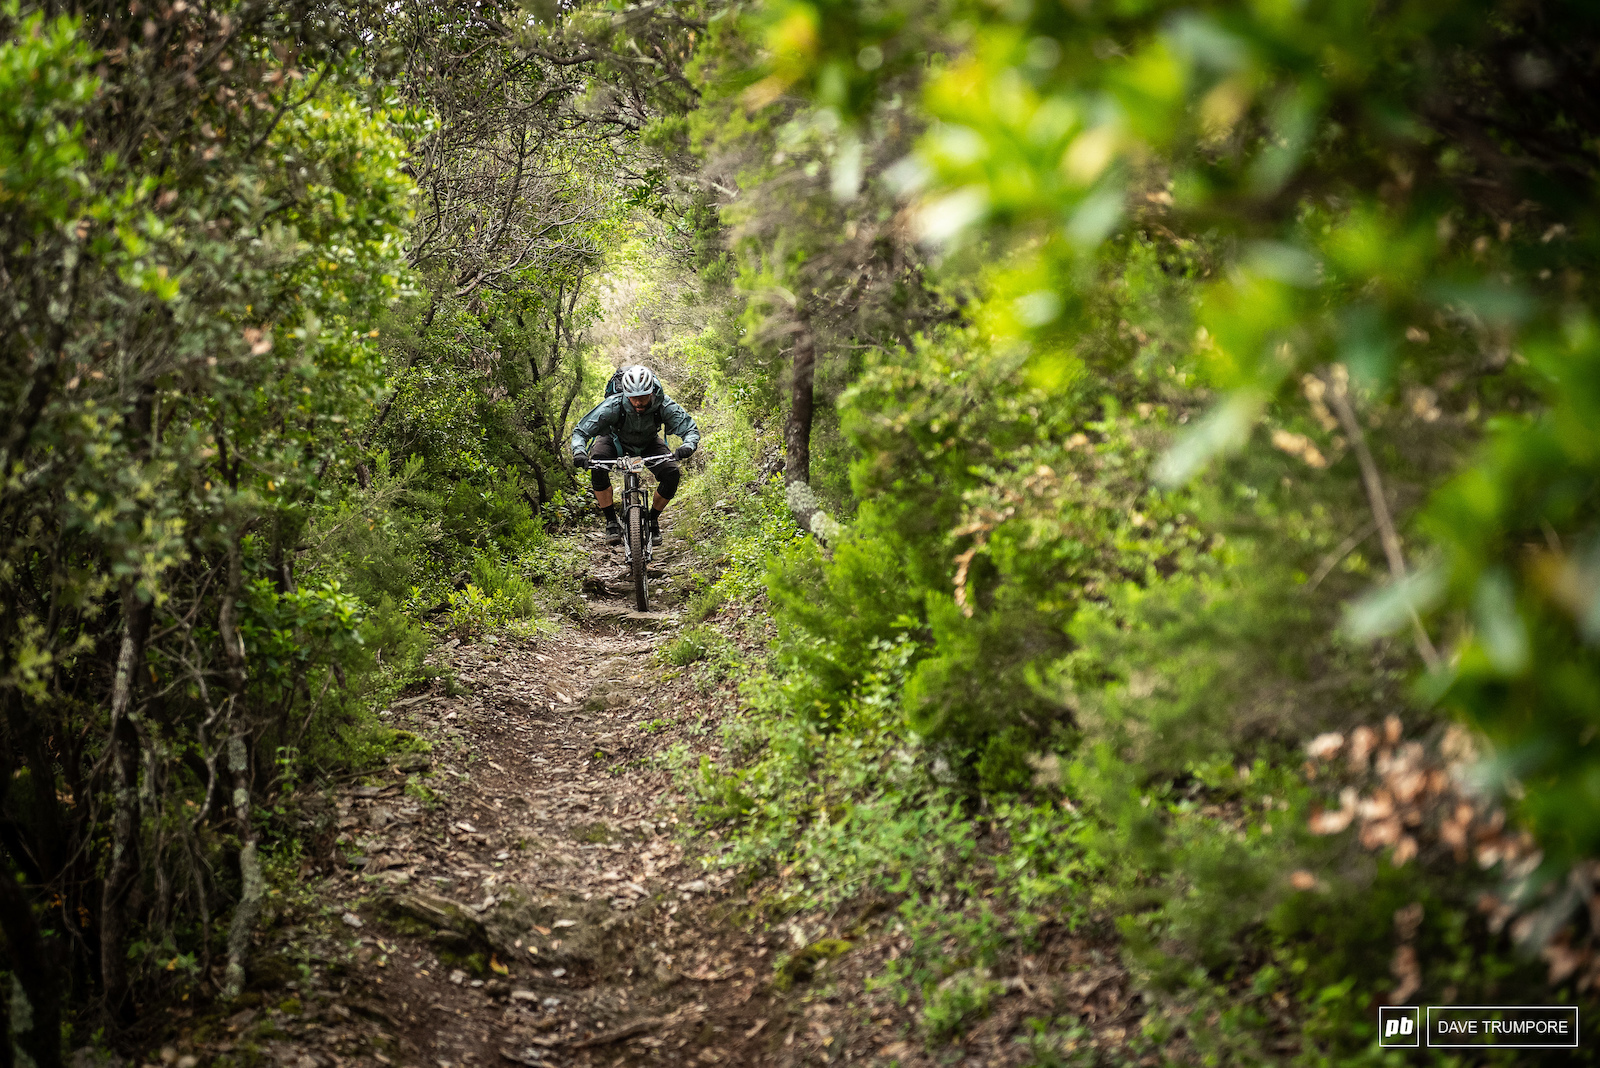 Matt Delorme descends through a tunnel of trees on Stage 8.